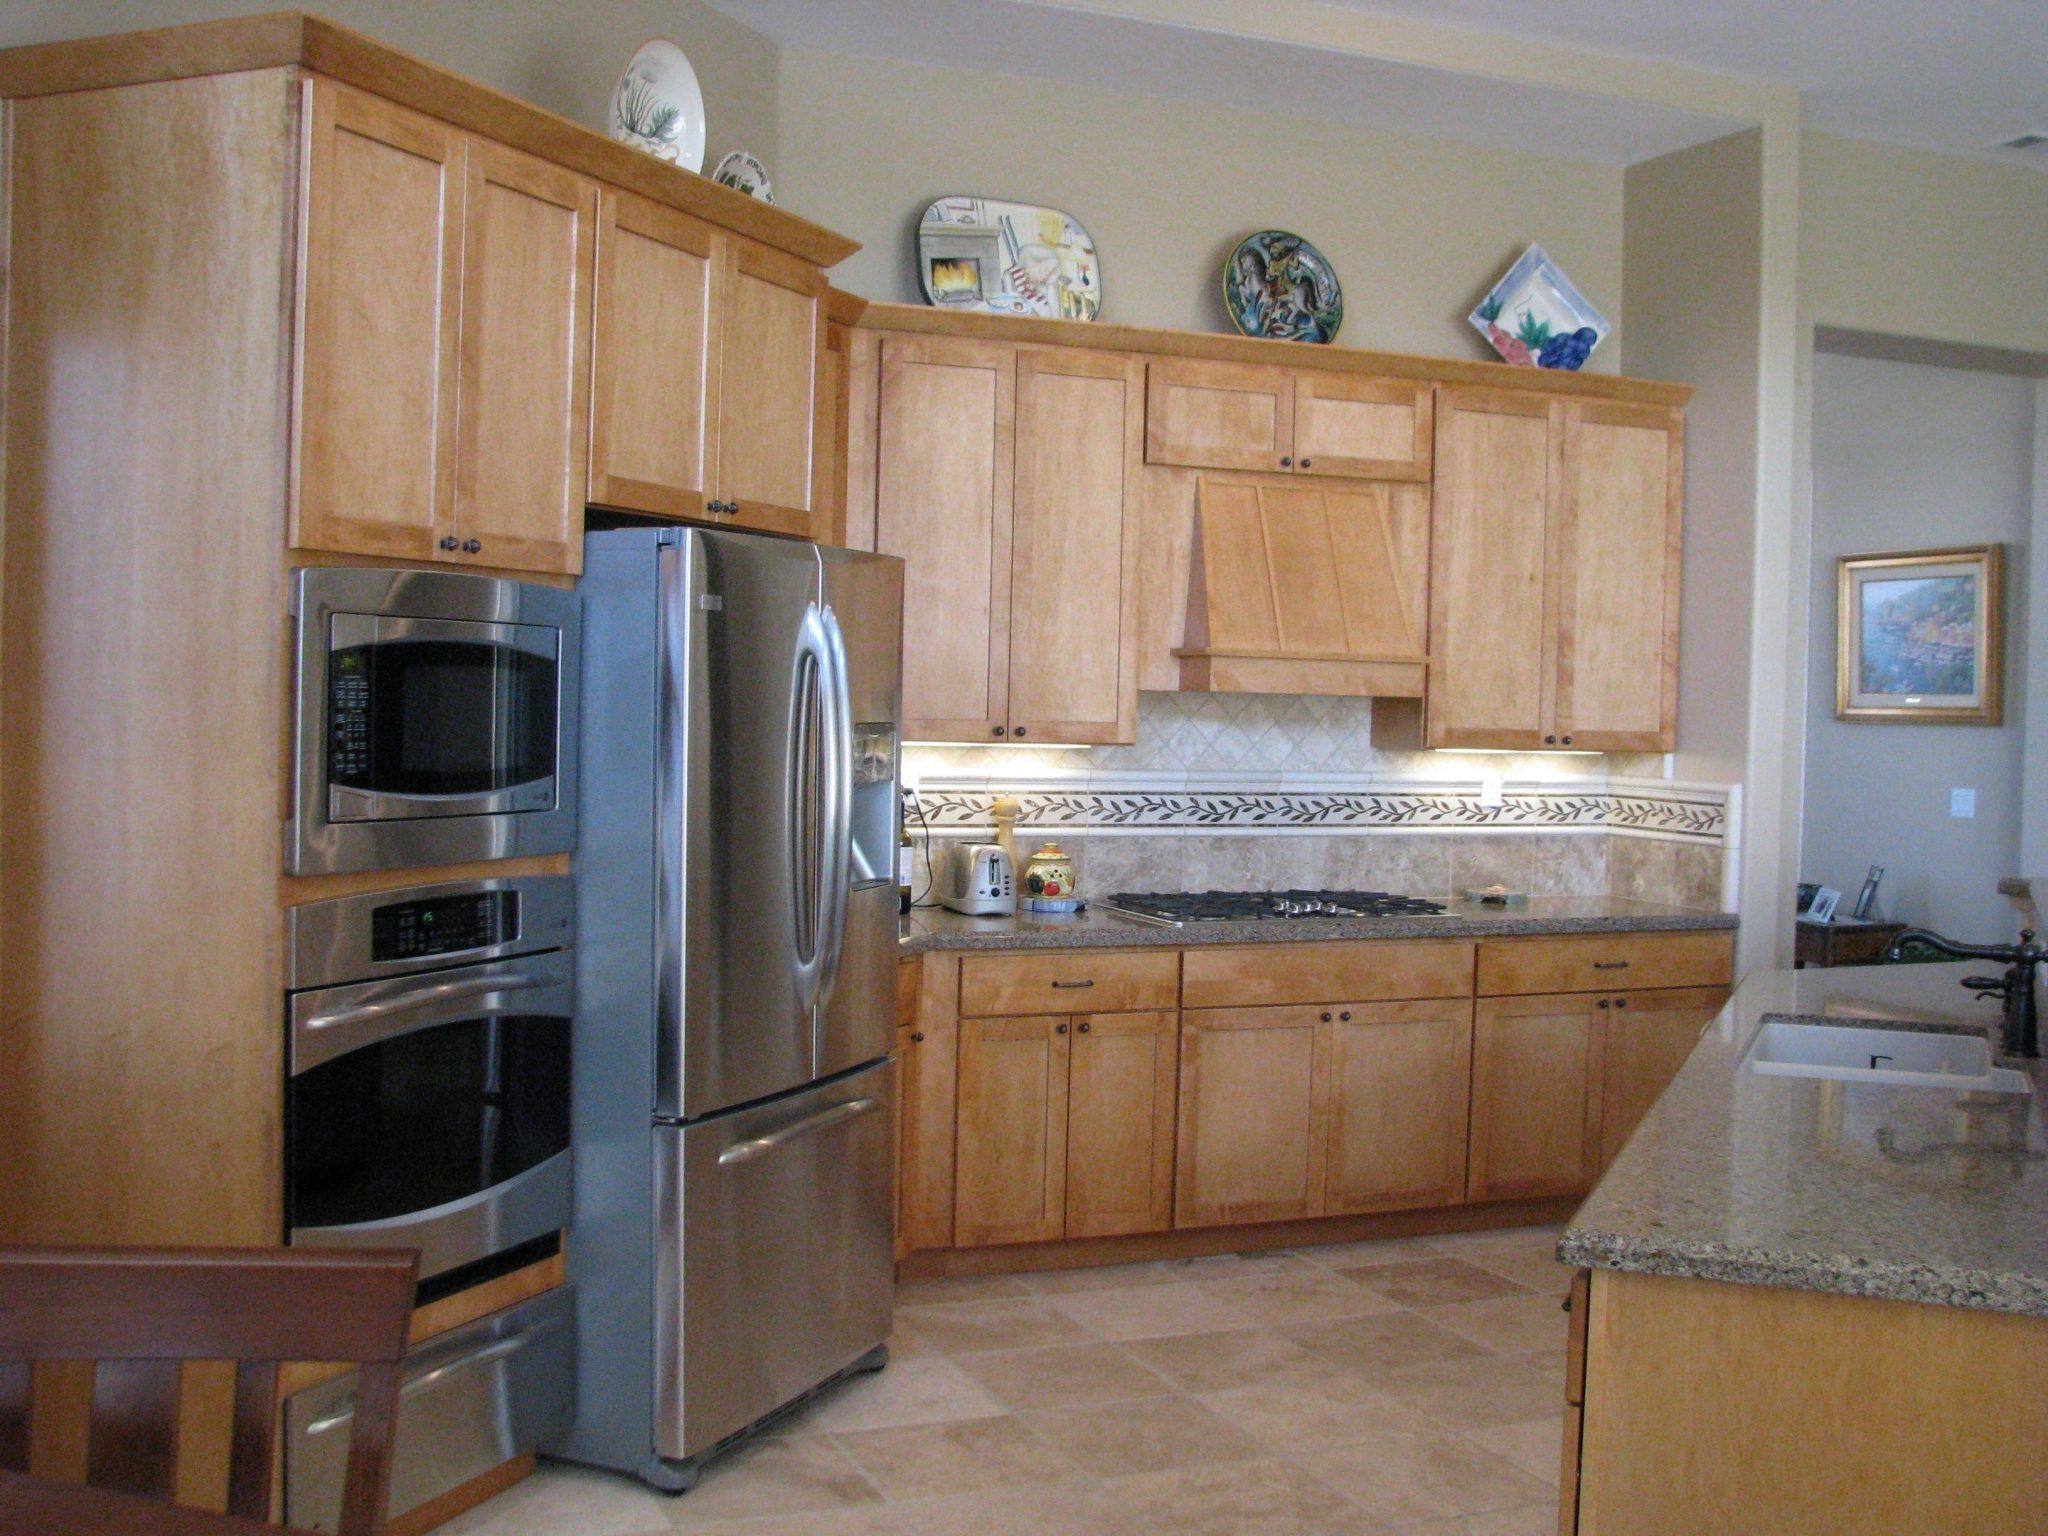 Armstrong Cabinets Price List In 2020 Schuler Cabinets Kitchen Cabinets For Sale Kitchen Cabinets